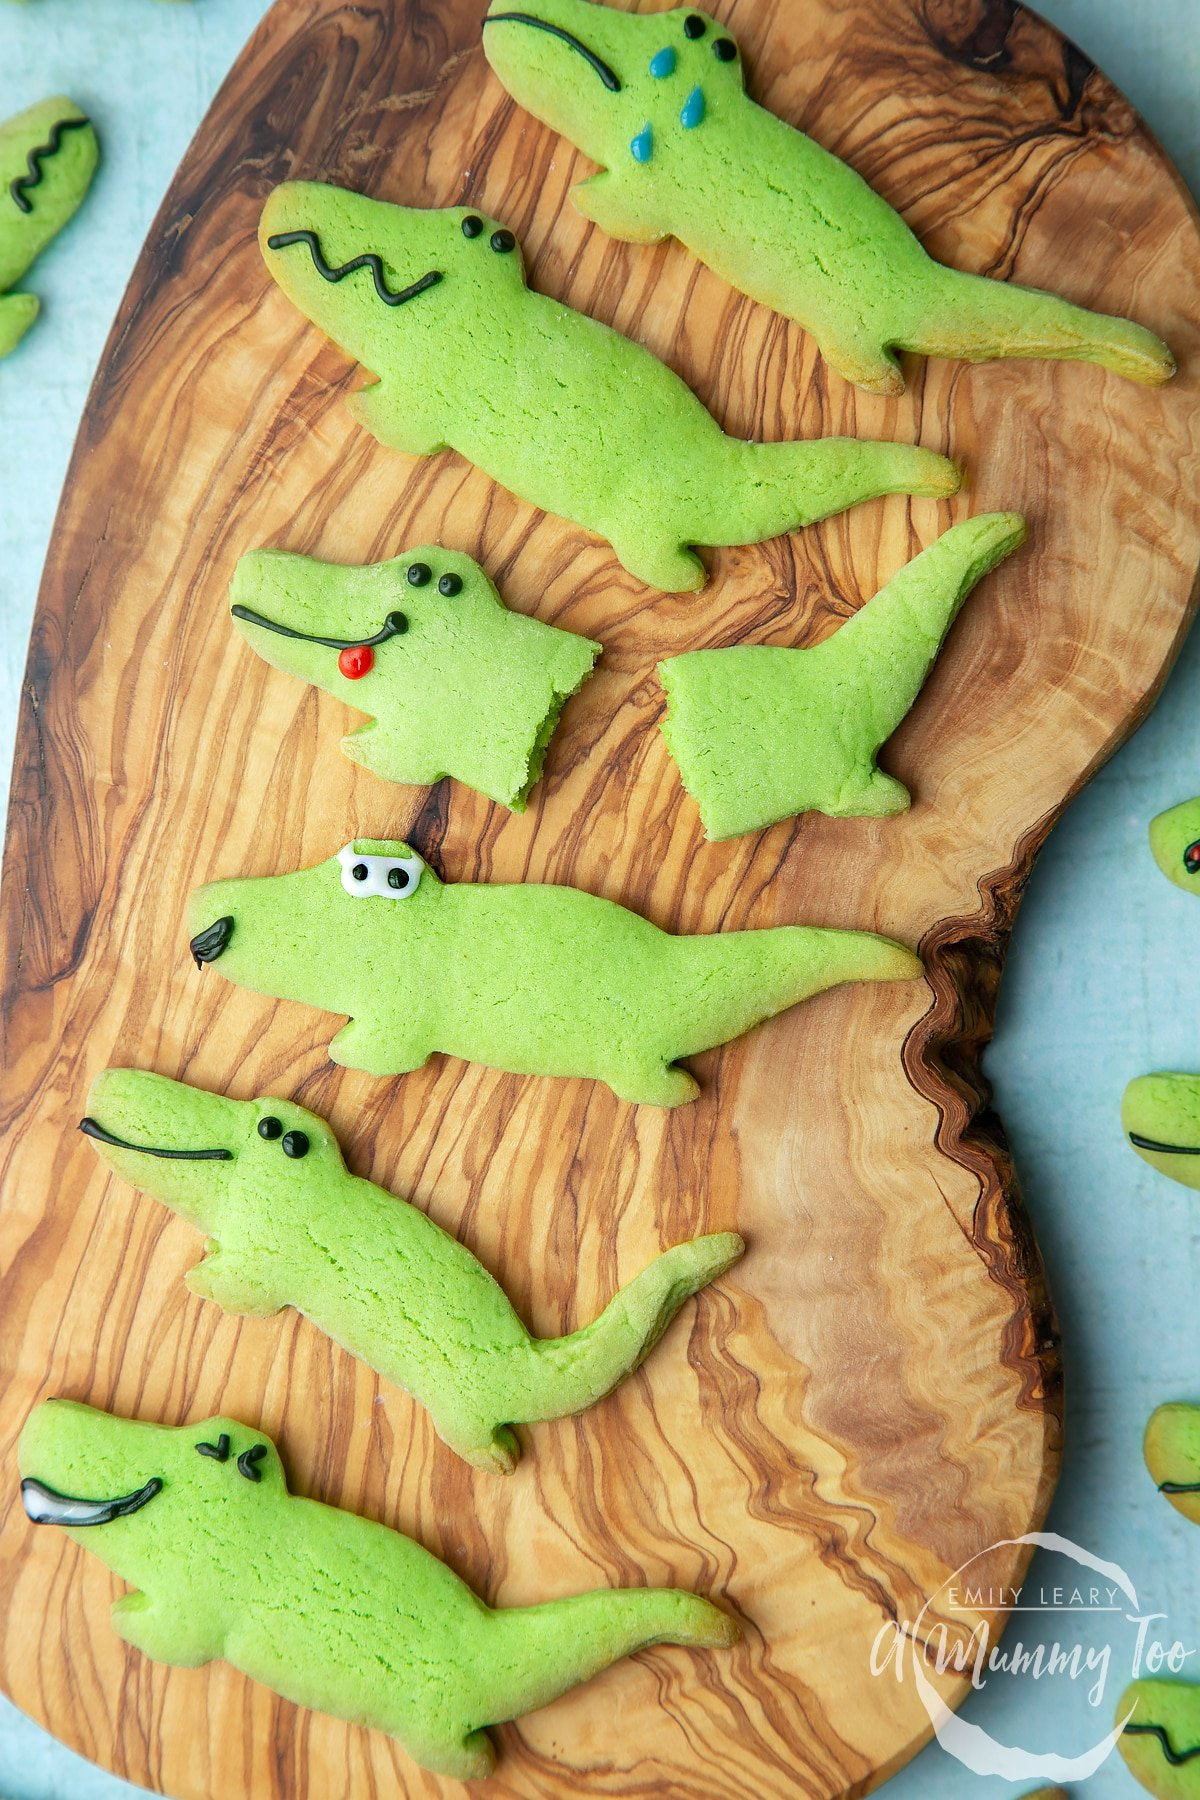 Finished crocodile cookies on a wooden board.